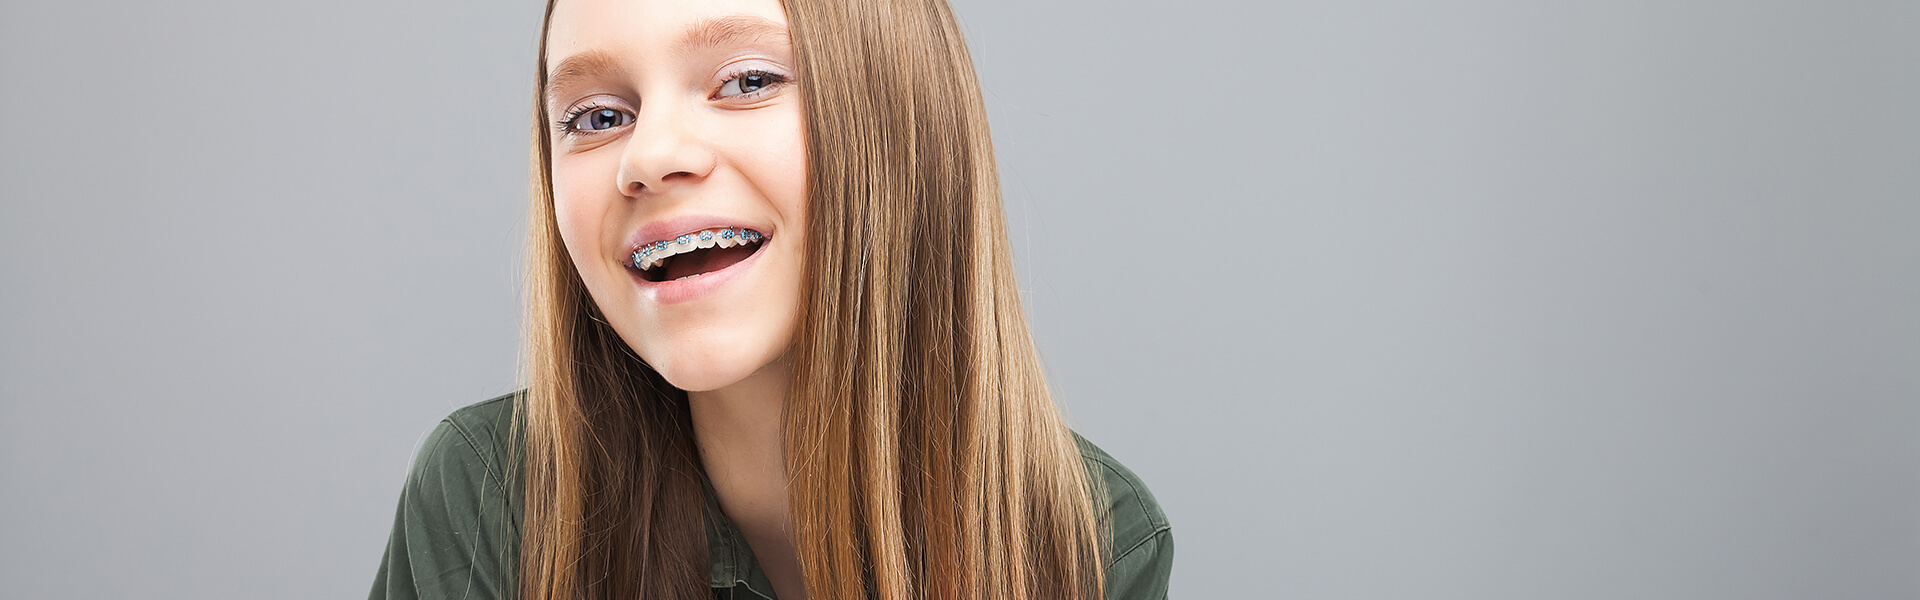 What are the reasons to get the service from an orthodontist?